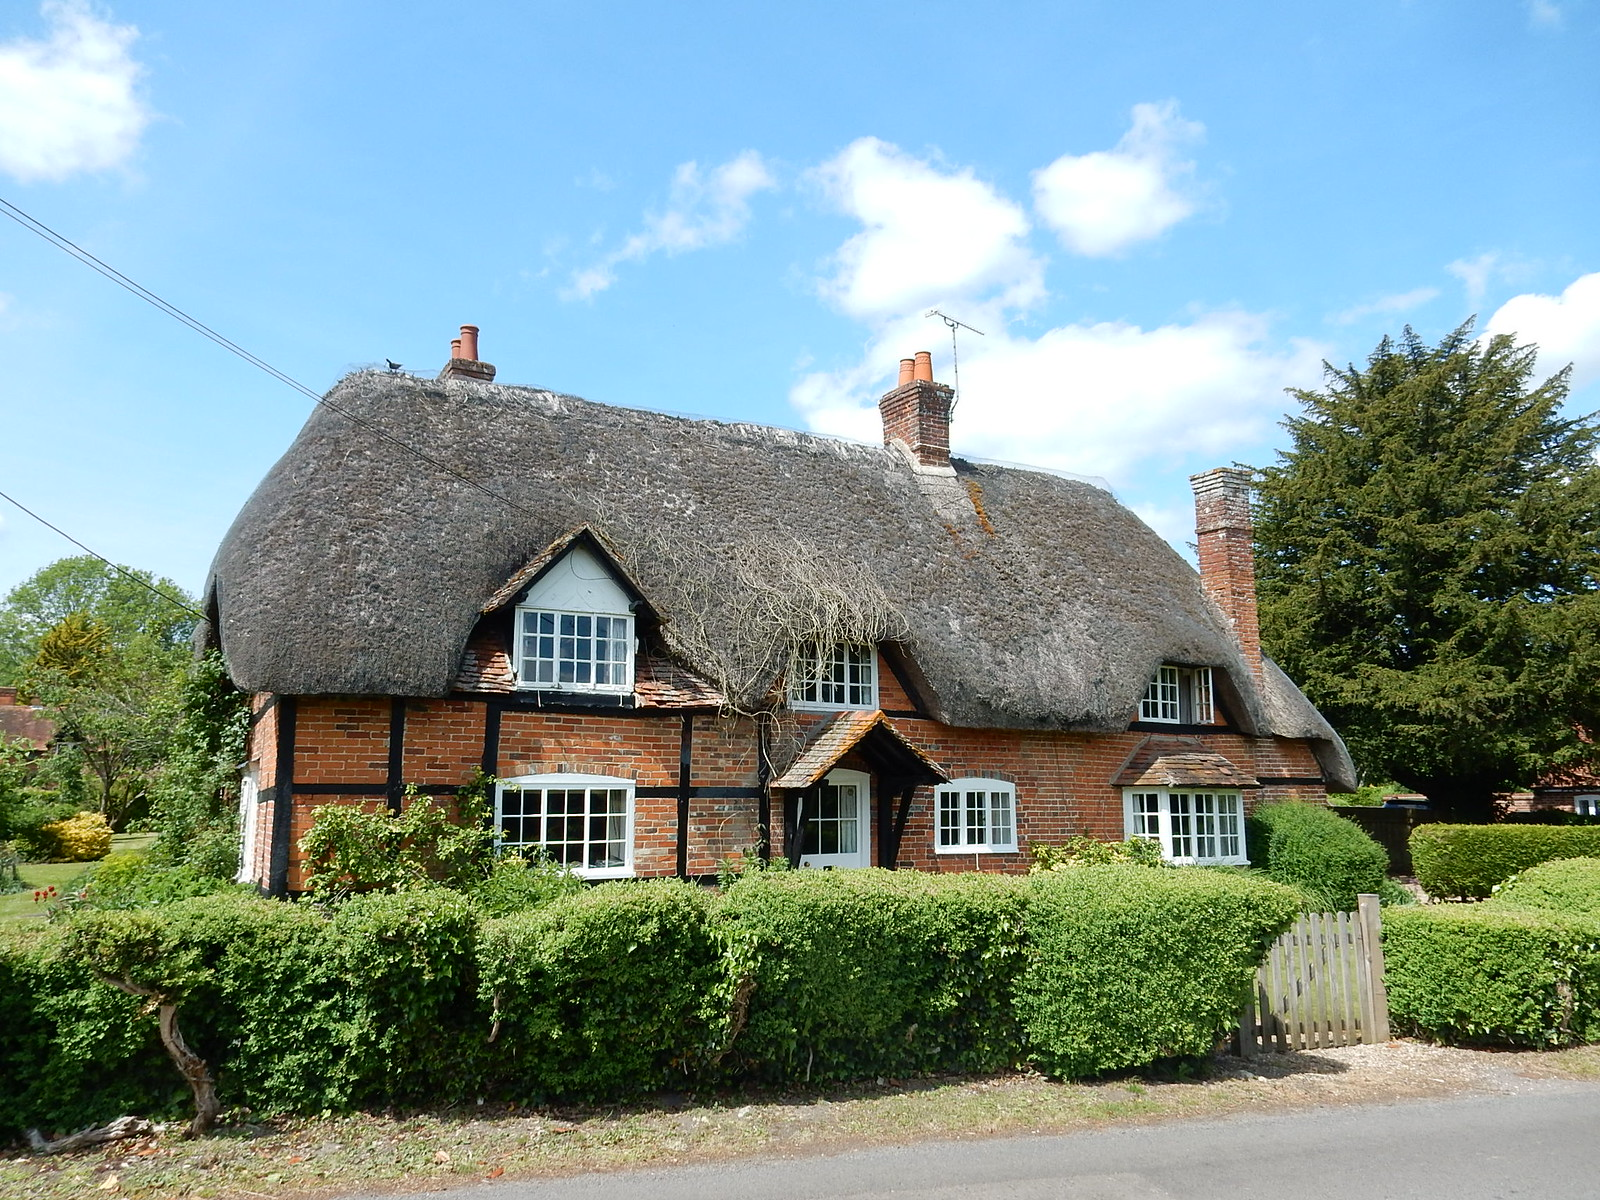 Thatched house Whitchurch to Andover